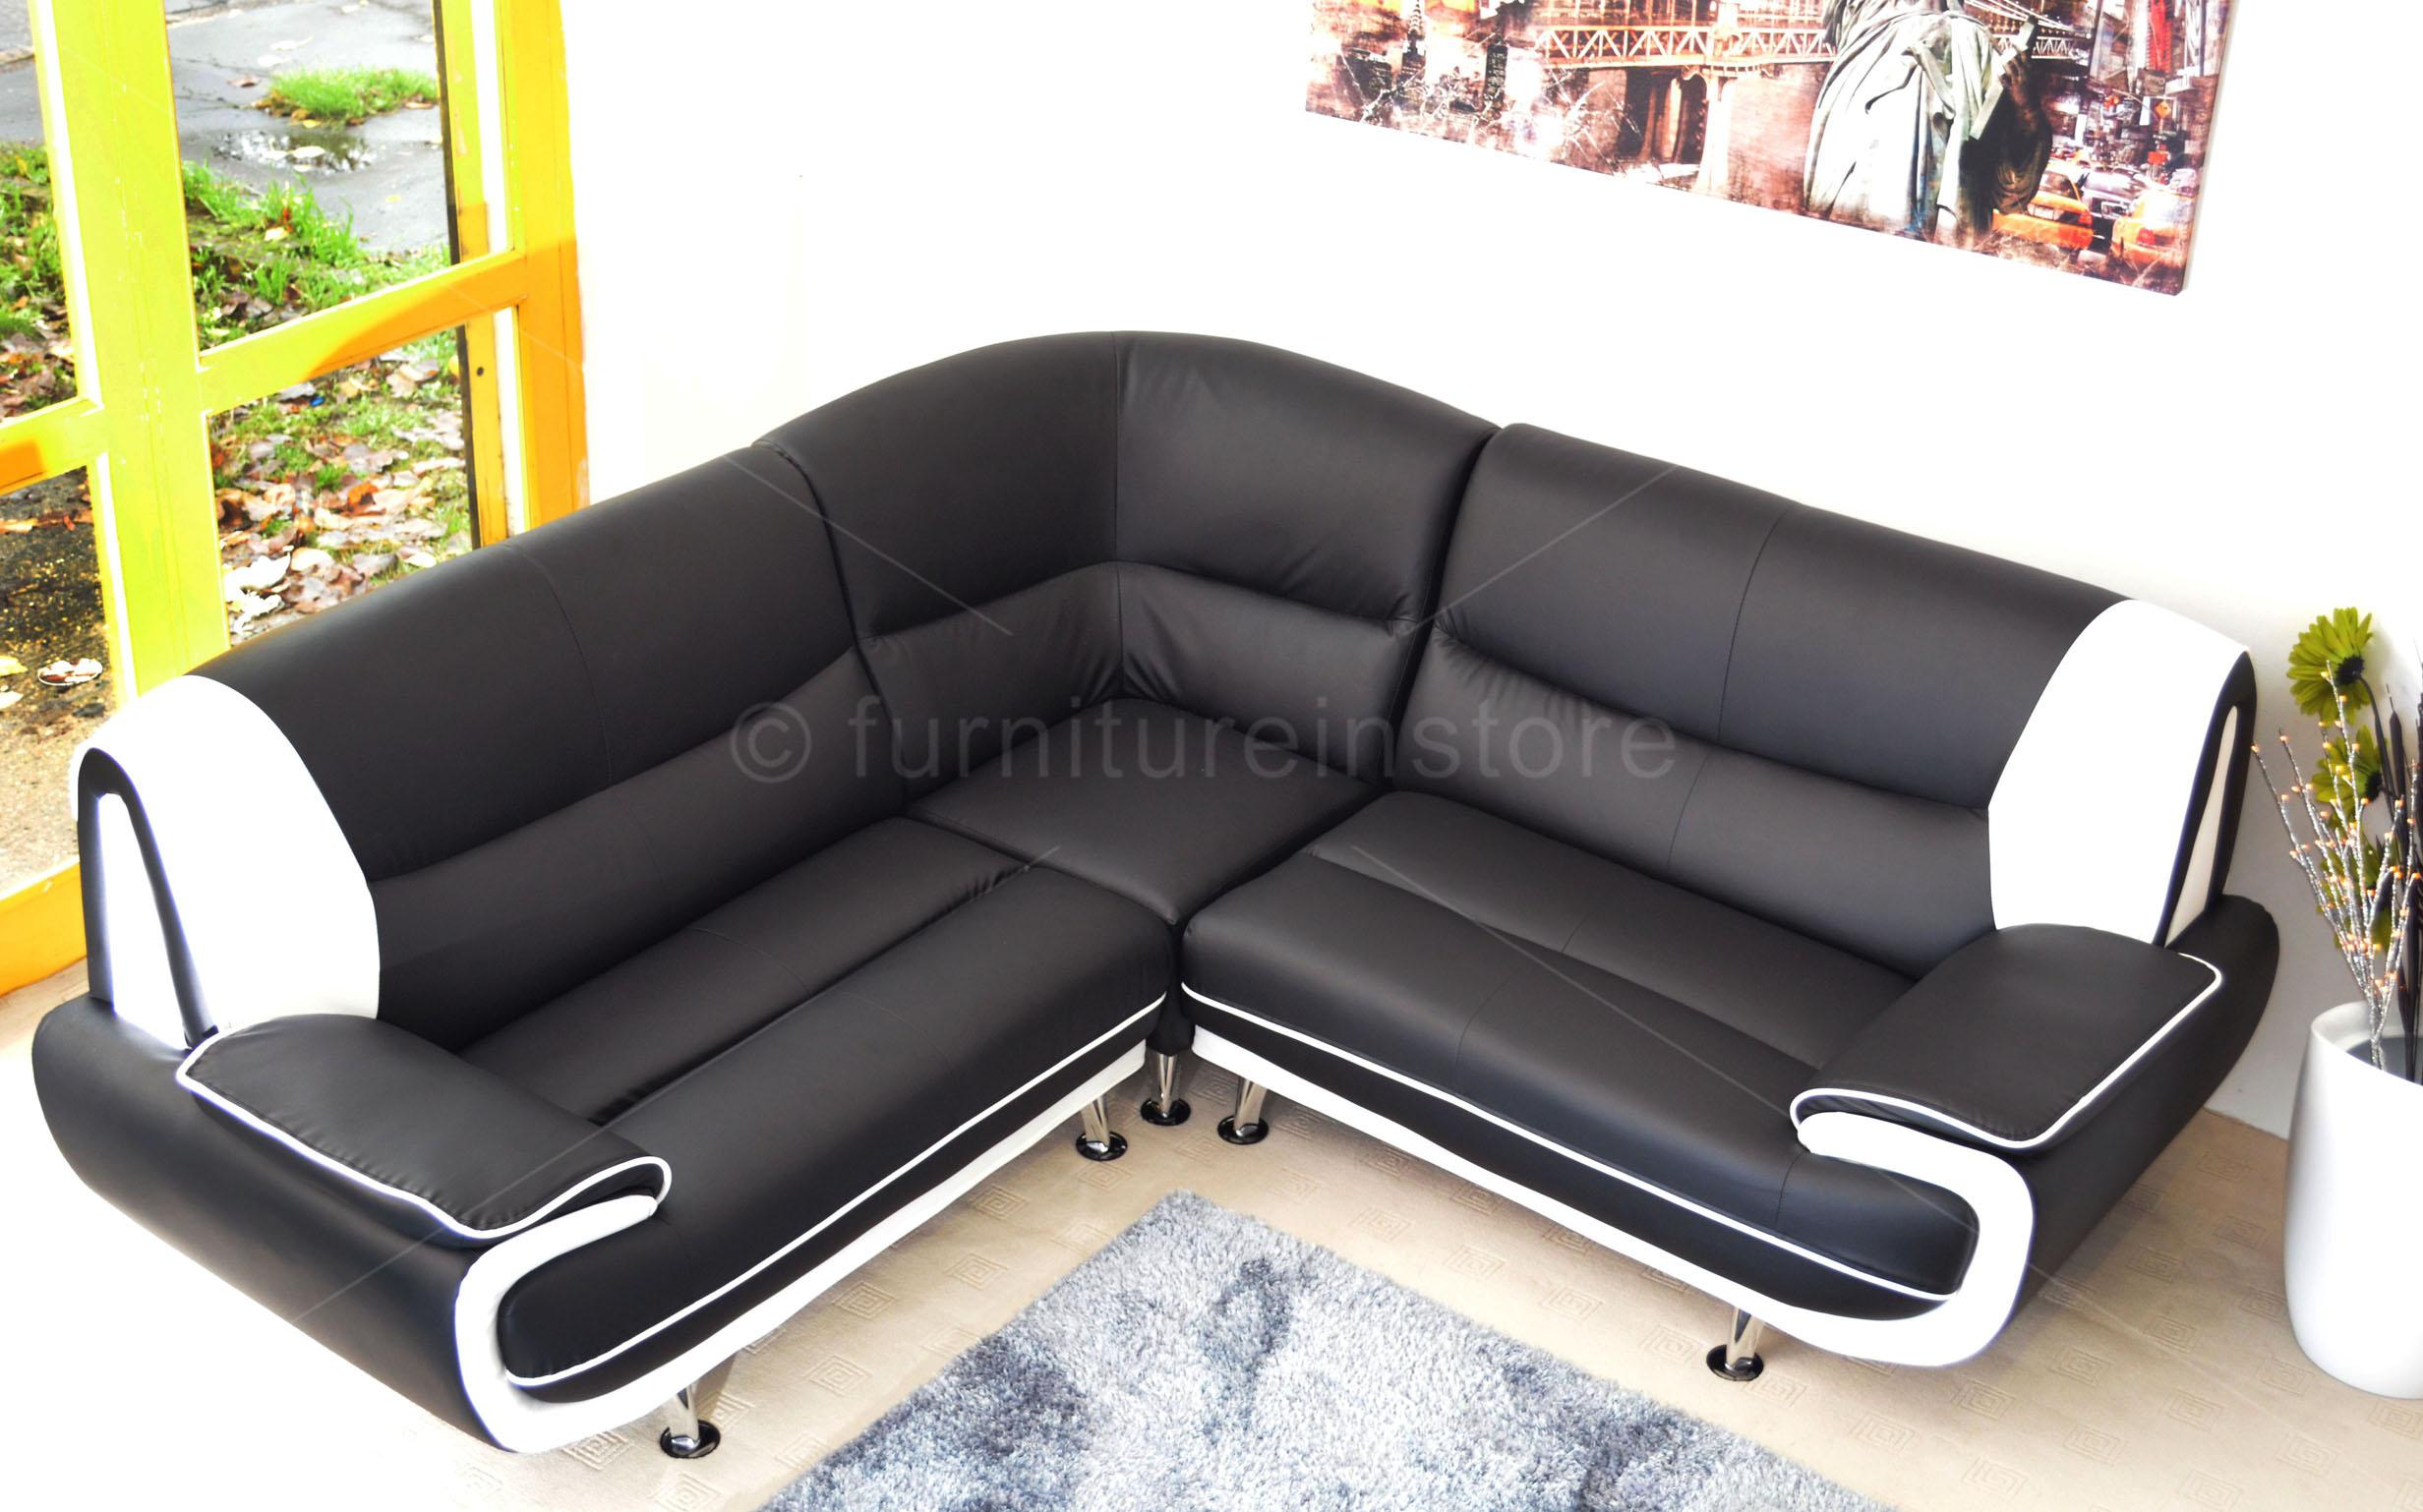 Faux Leather Corner Sofa Sofa PASSERO Corner Sofas Setttee on Sale